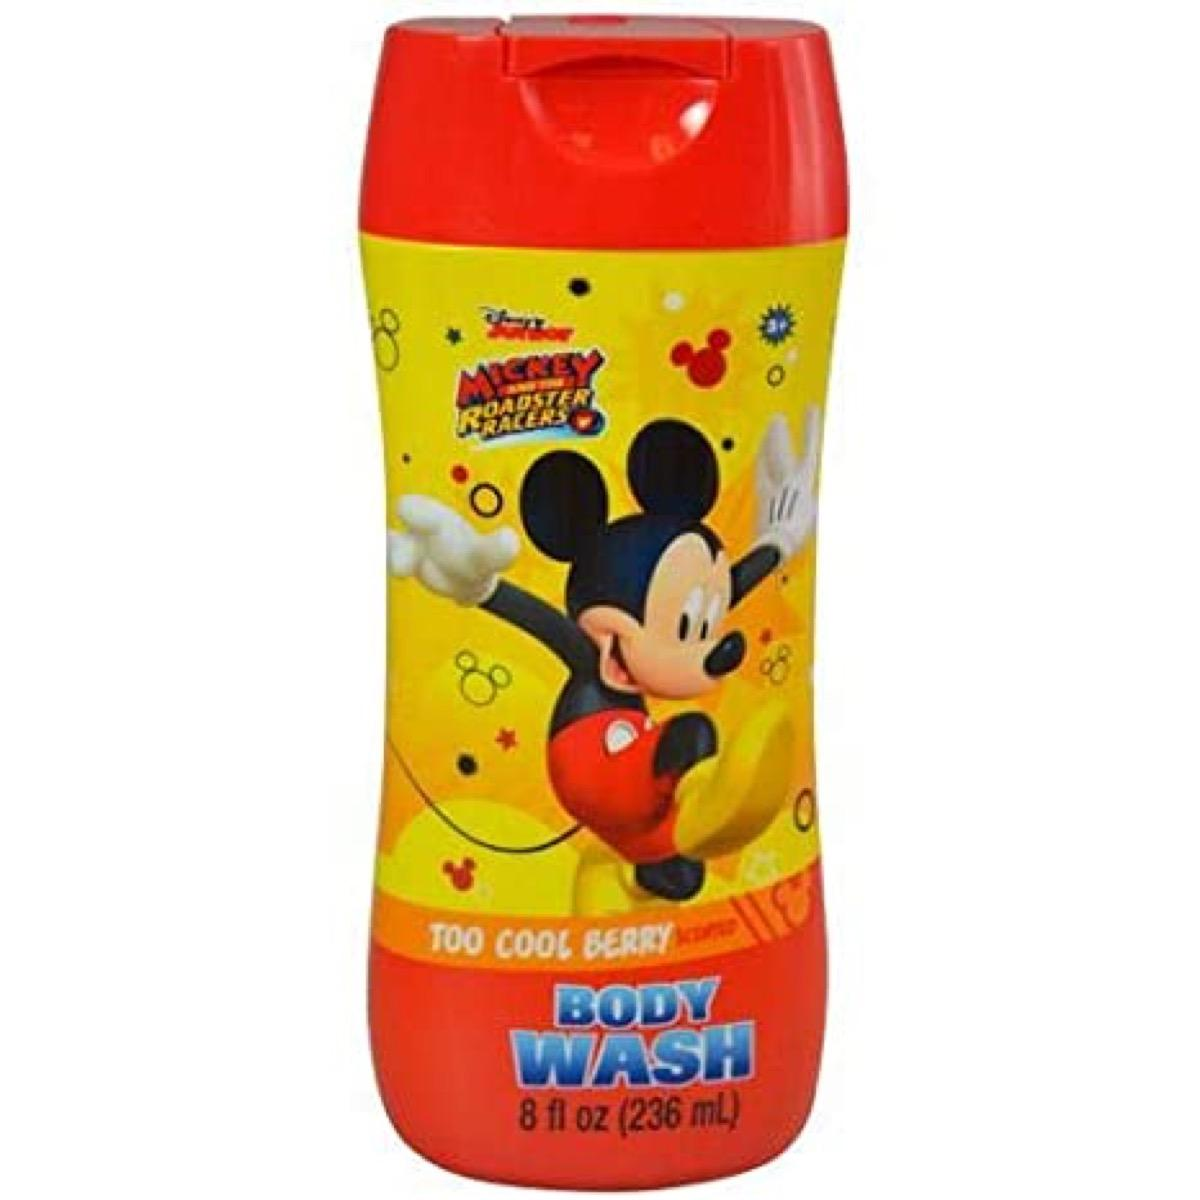 Mickey And The Roadster Racers Body Wash Too Cool Berry Scented